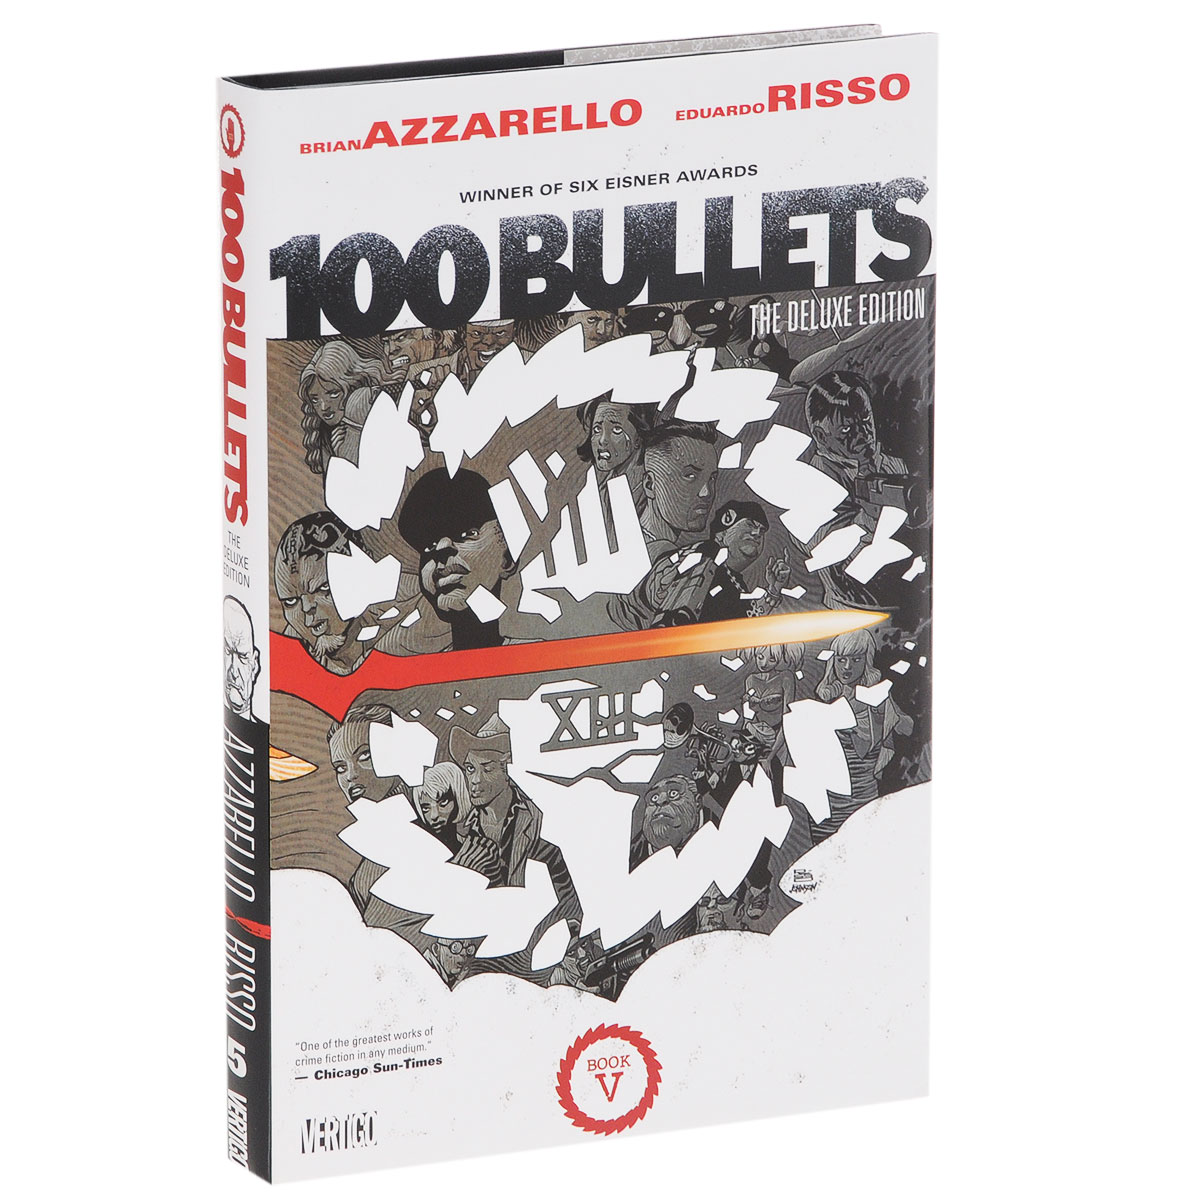 100 Bullets: The Deluxe Edition: Book 5 zenfone 2 deluxe special edition